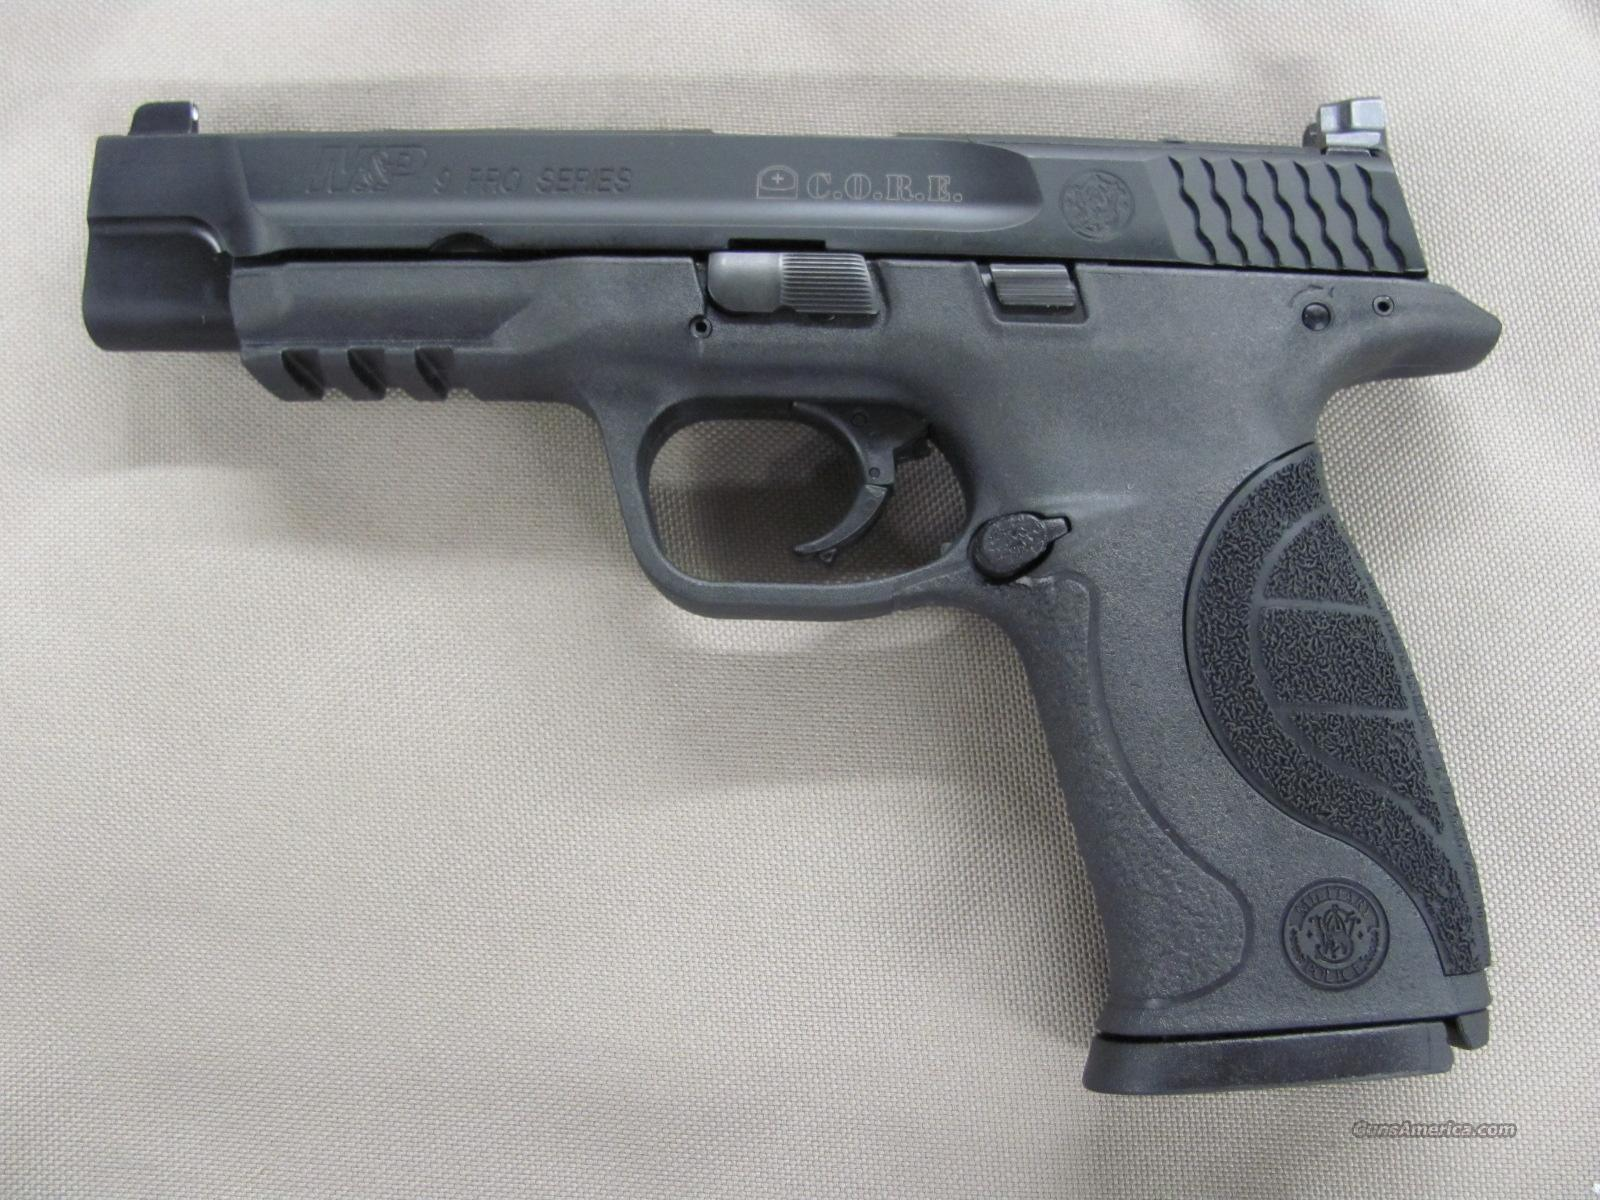 Smith & Wesson M&P9L Pro Series C.O.R.E. 9 mm  **NEW**  Guns > Pistols > Smith & Wesson Pistols - Autos > Polymer Frame